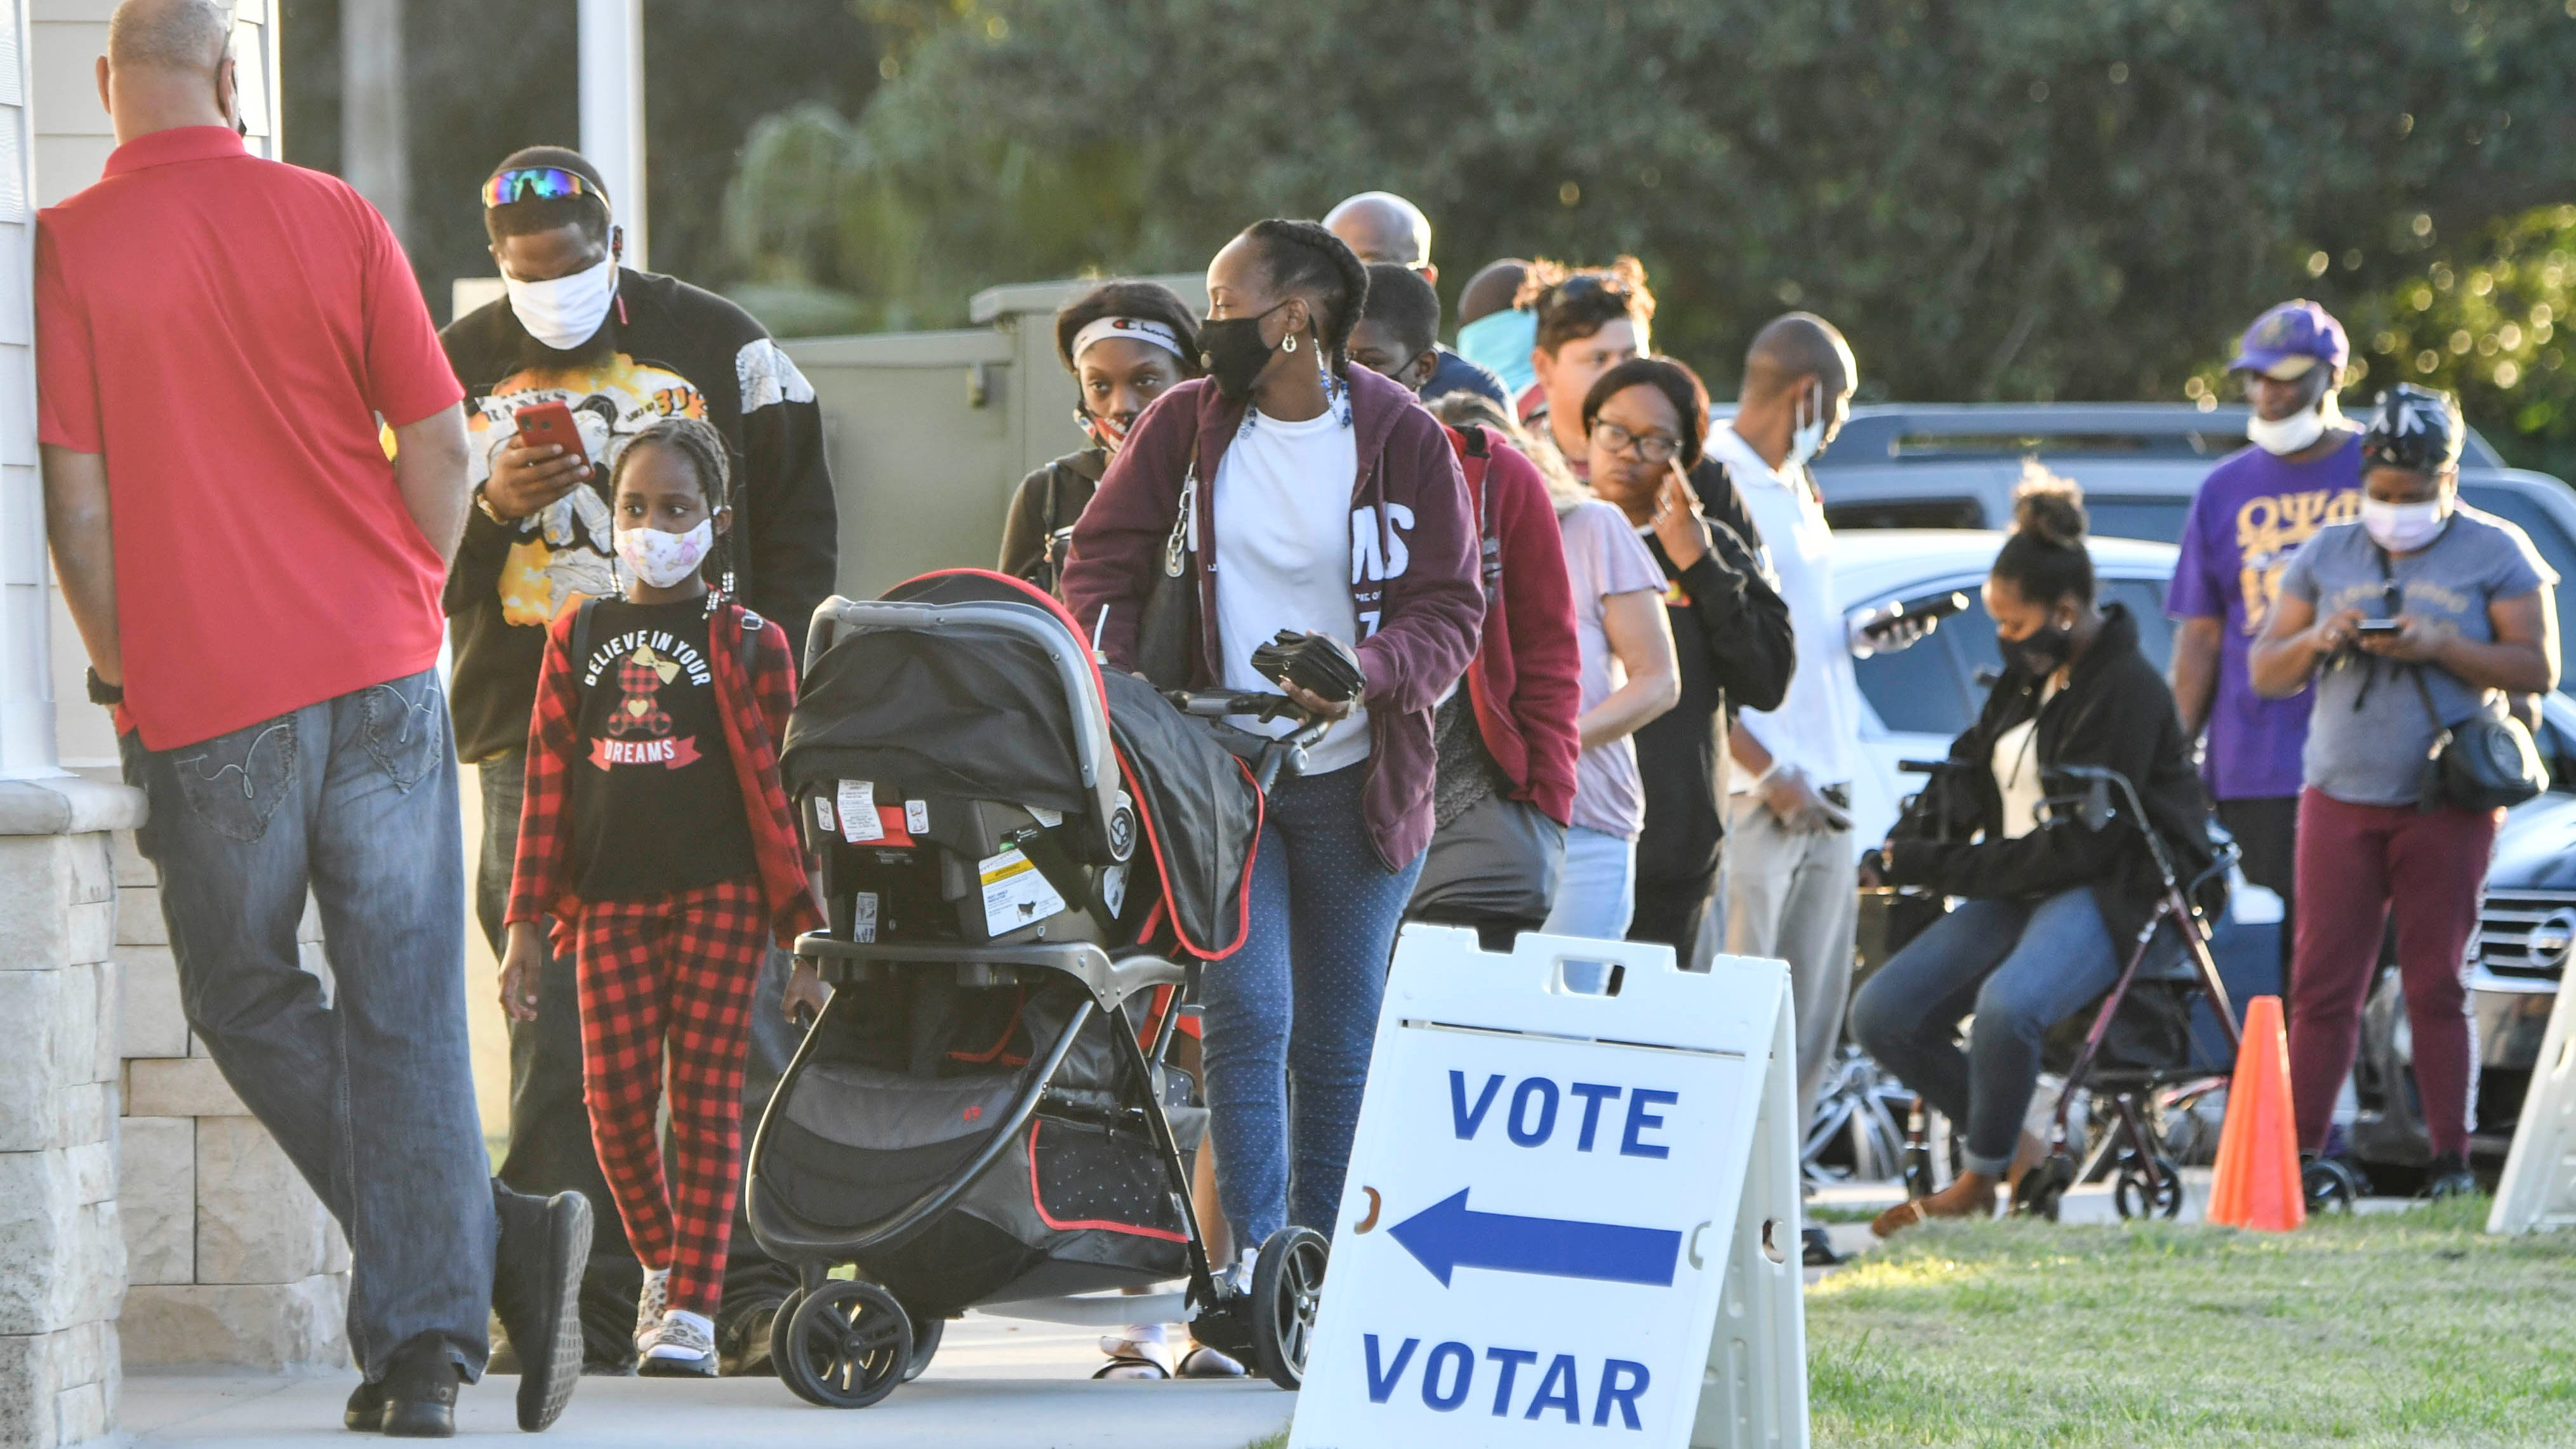 As the sun goes down people wait in a short line to vote at the Joe Lee Smith Center in Cocoa, FL Mandatory Credit: Craig Bailey/FLORIDA TODAY via USA TODAY NETWORK